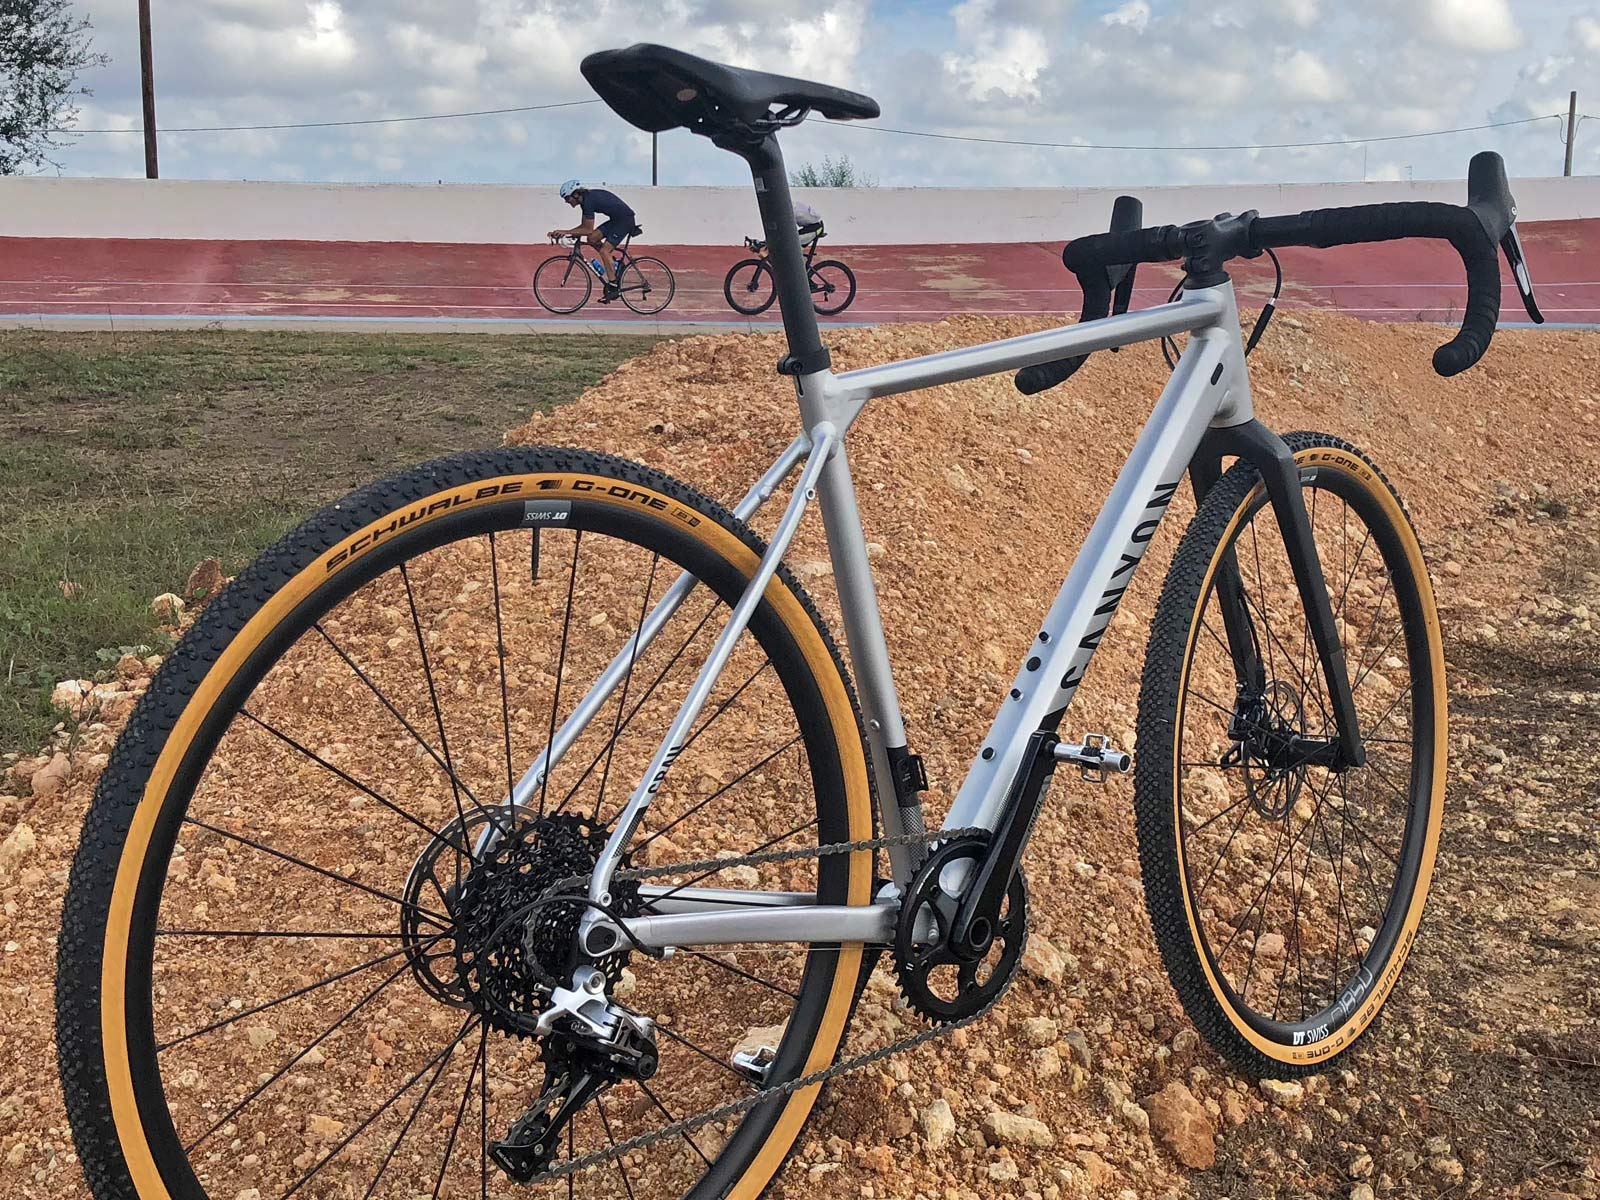 2019 Canyon Grail AL affordable aluminum gravel bike with conventional two-piece drop bar